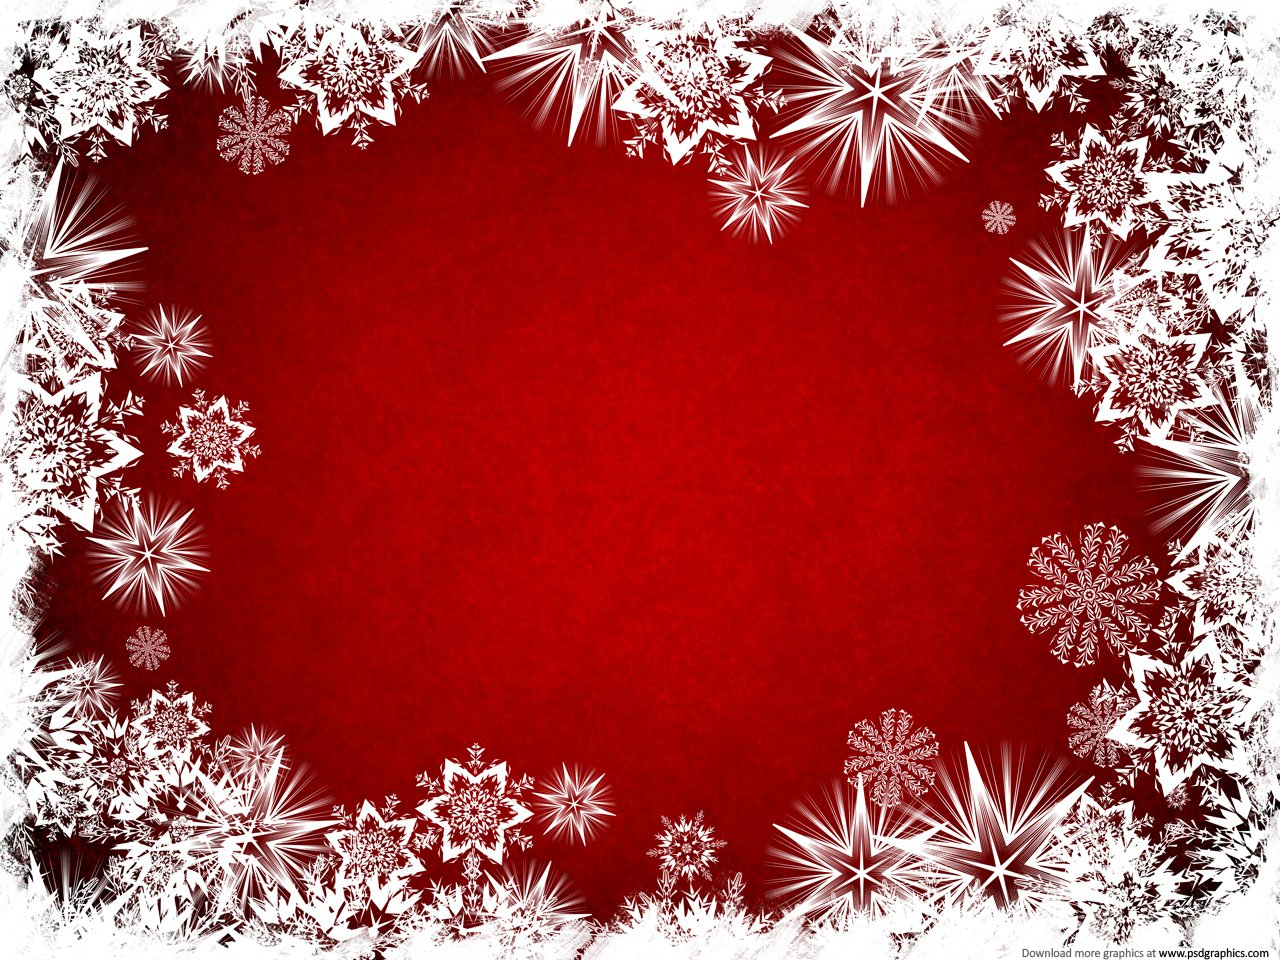 Abstract Christmas background PSDGraphics 1280x960